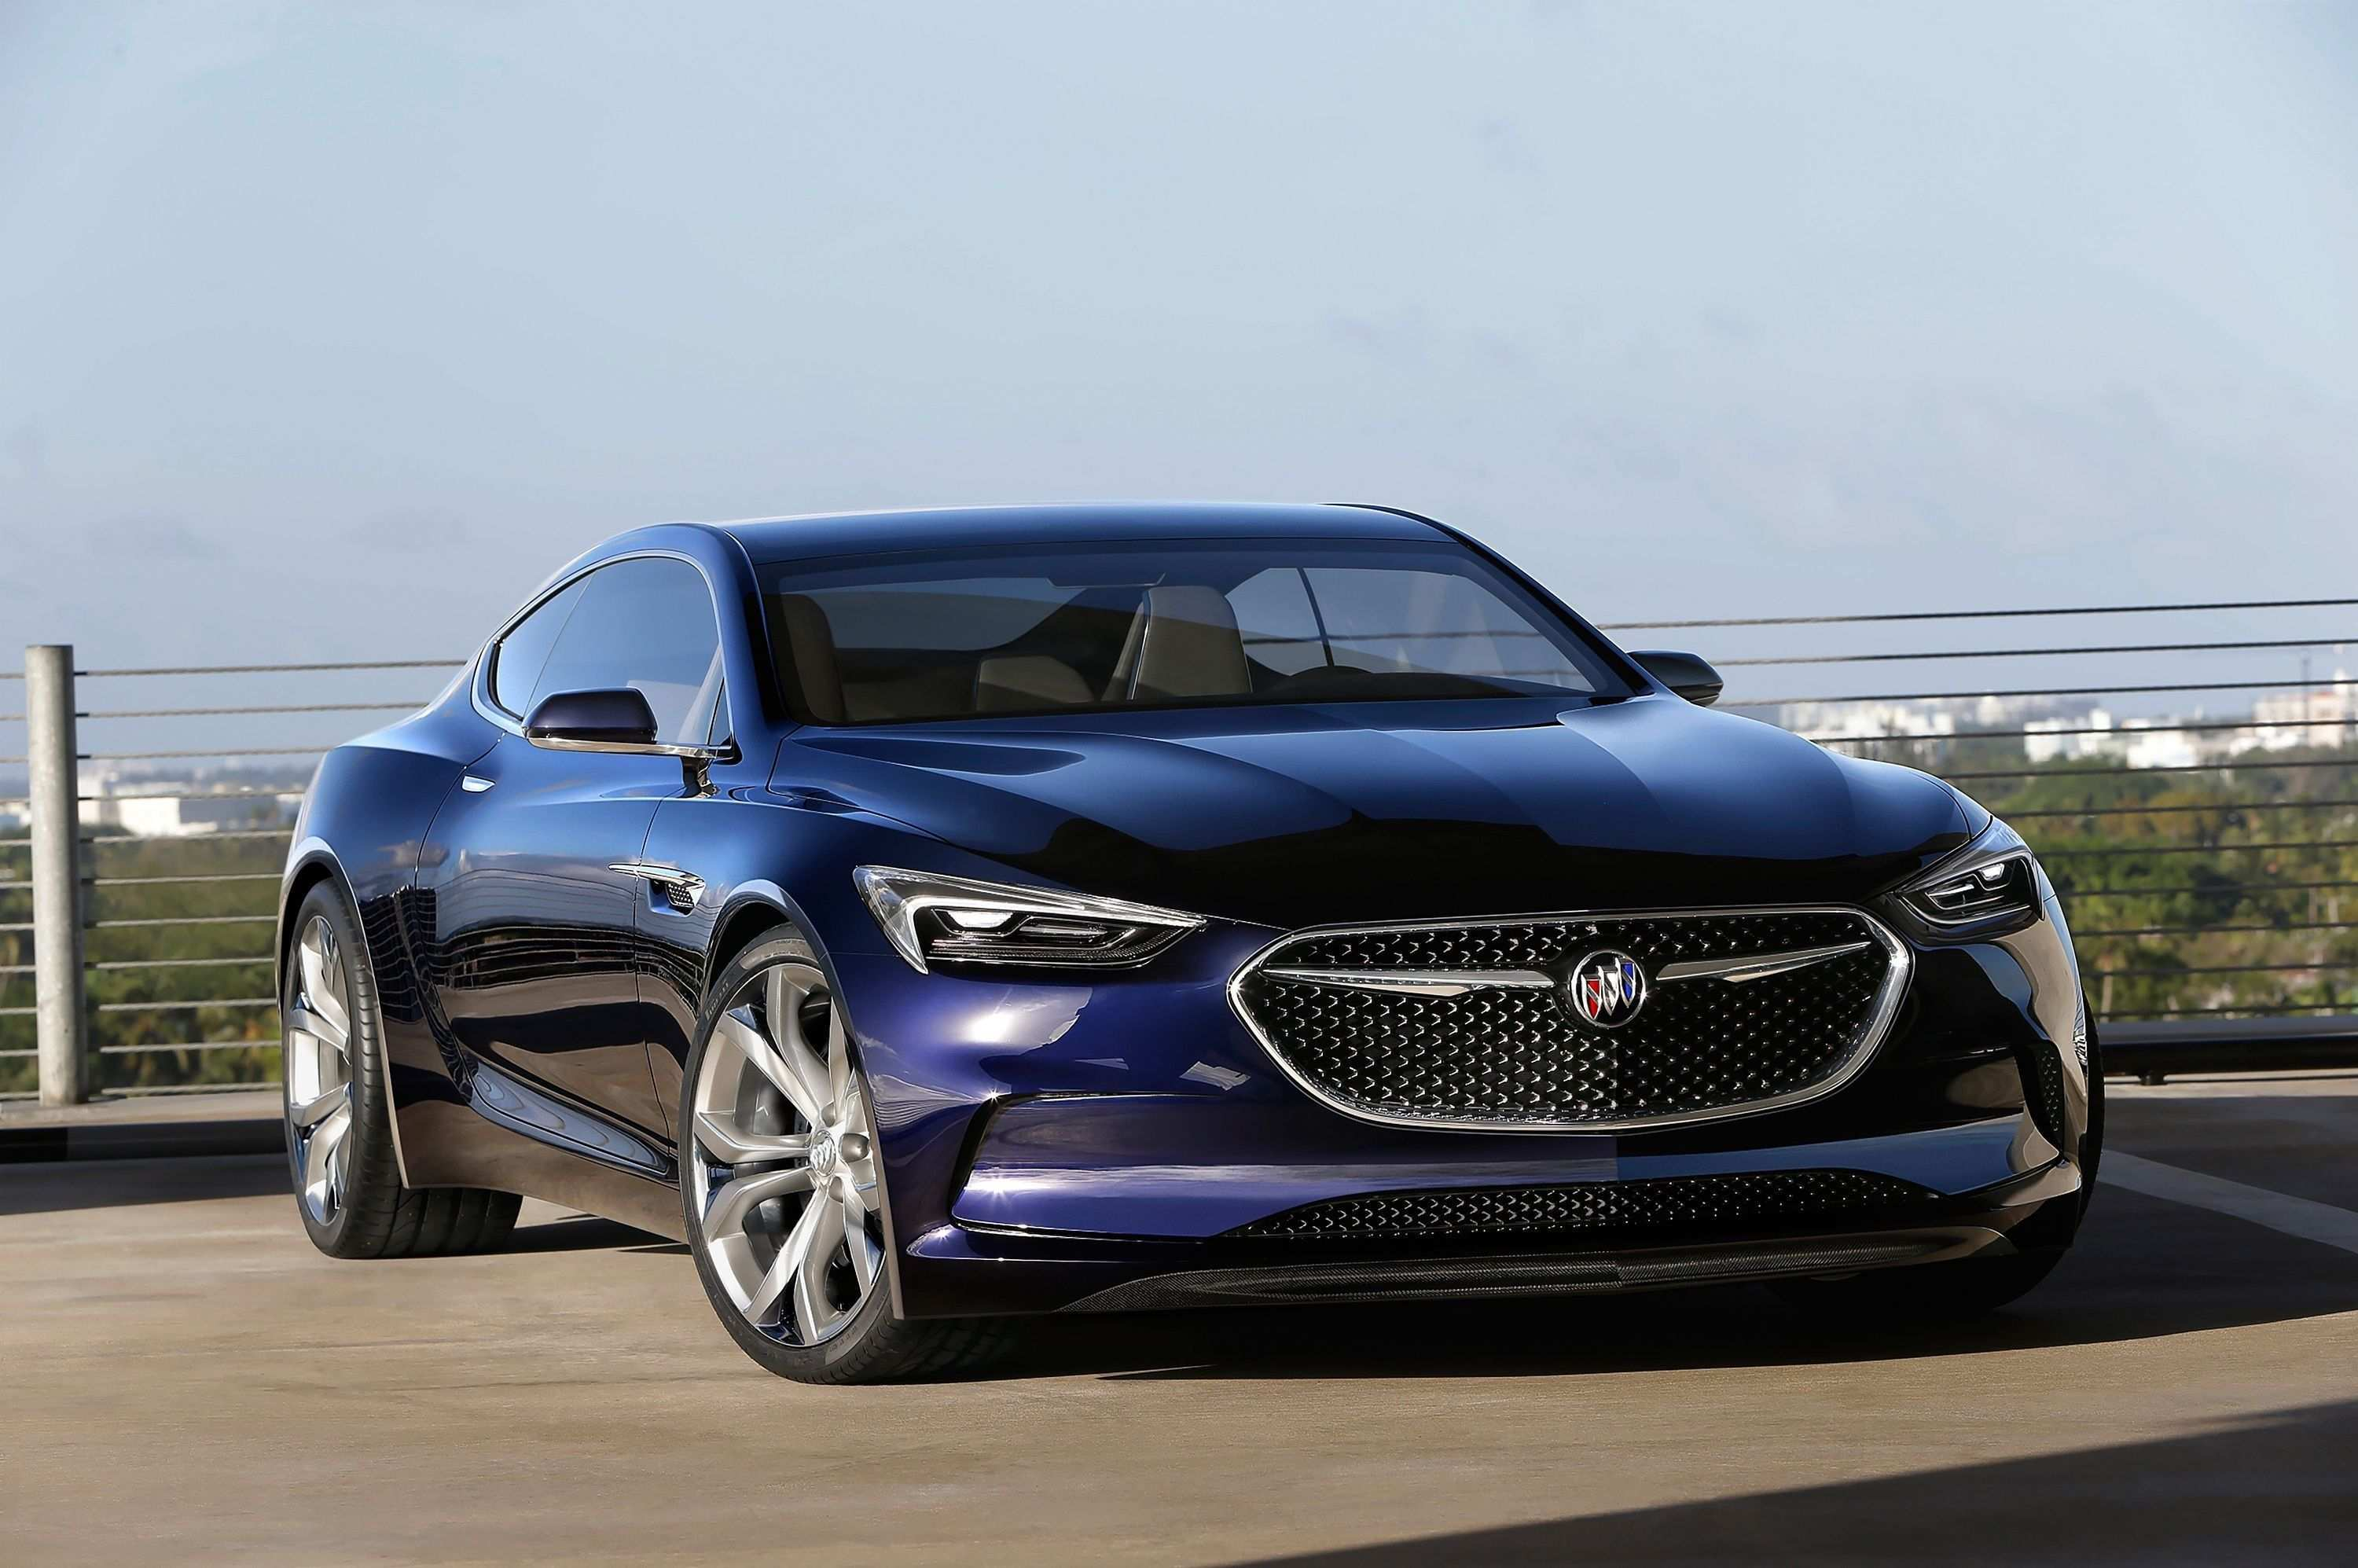 84 Great 2020 Buick Regal Speed Test for 2020 Buick Regal